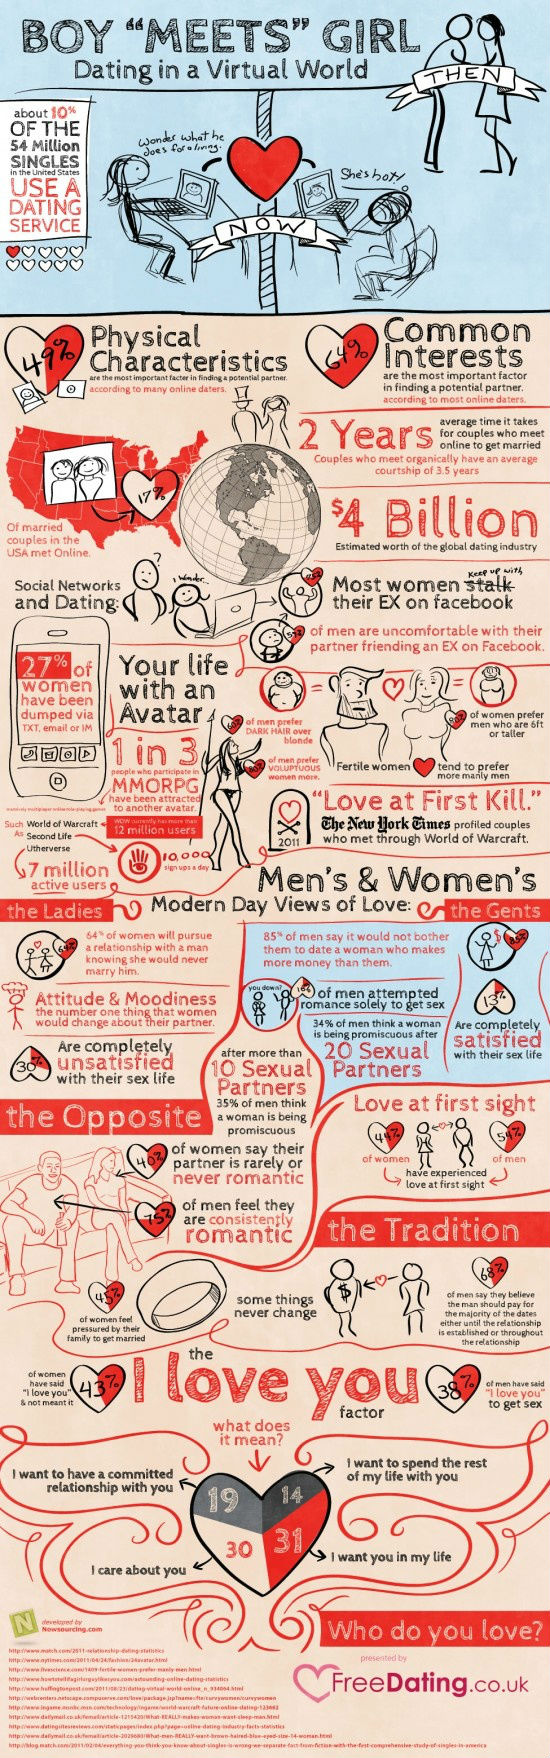 Dating in a Virtual World [Infographic]